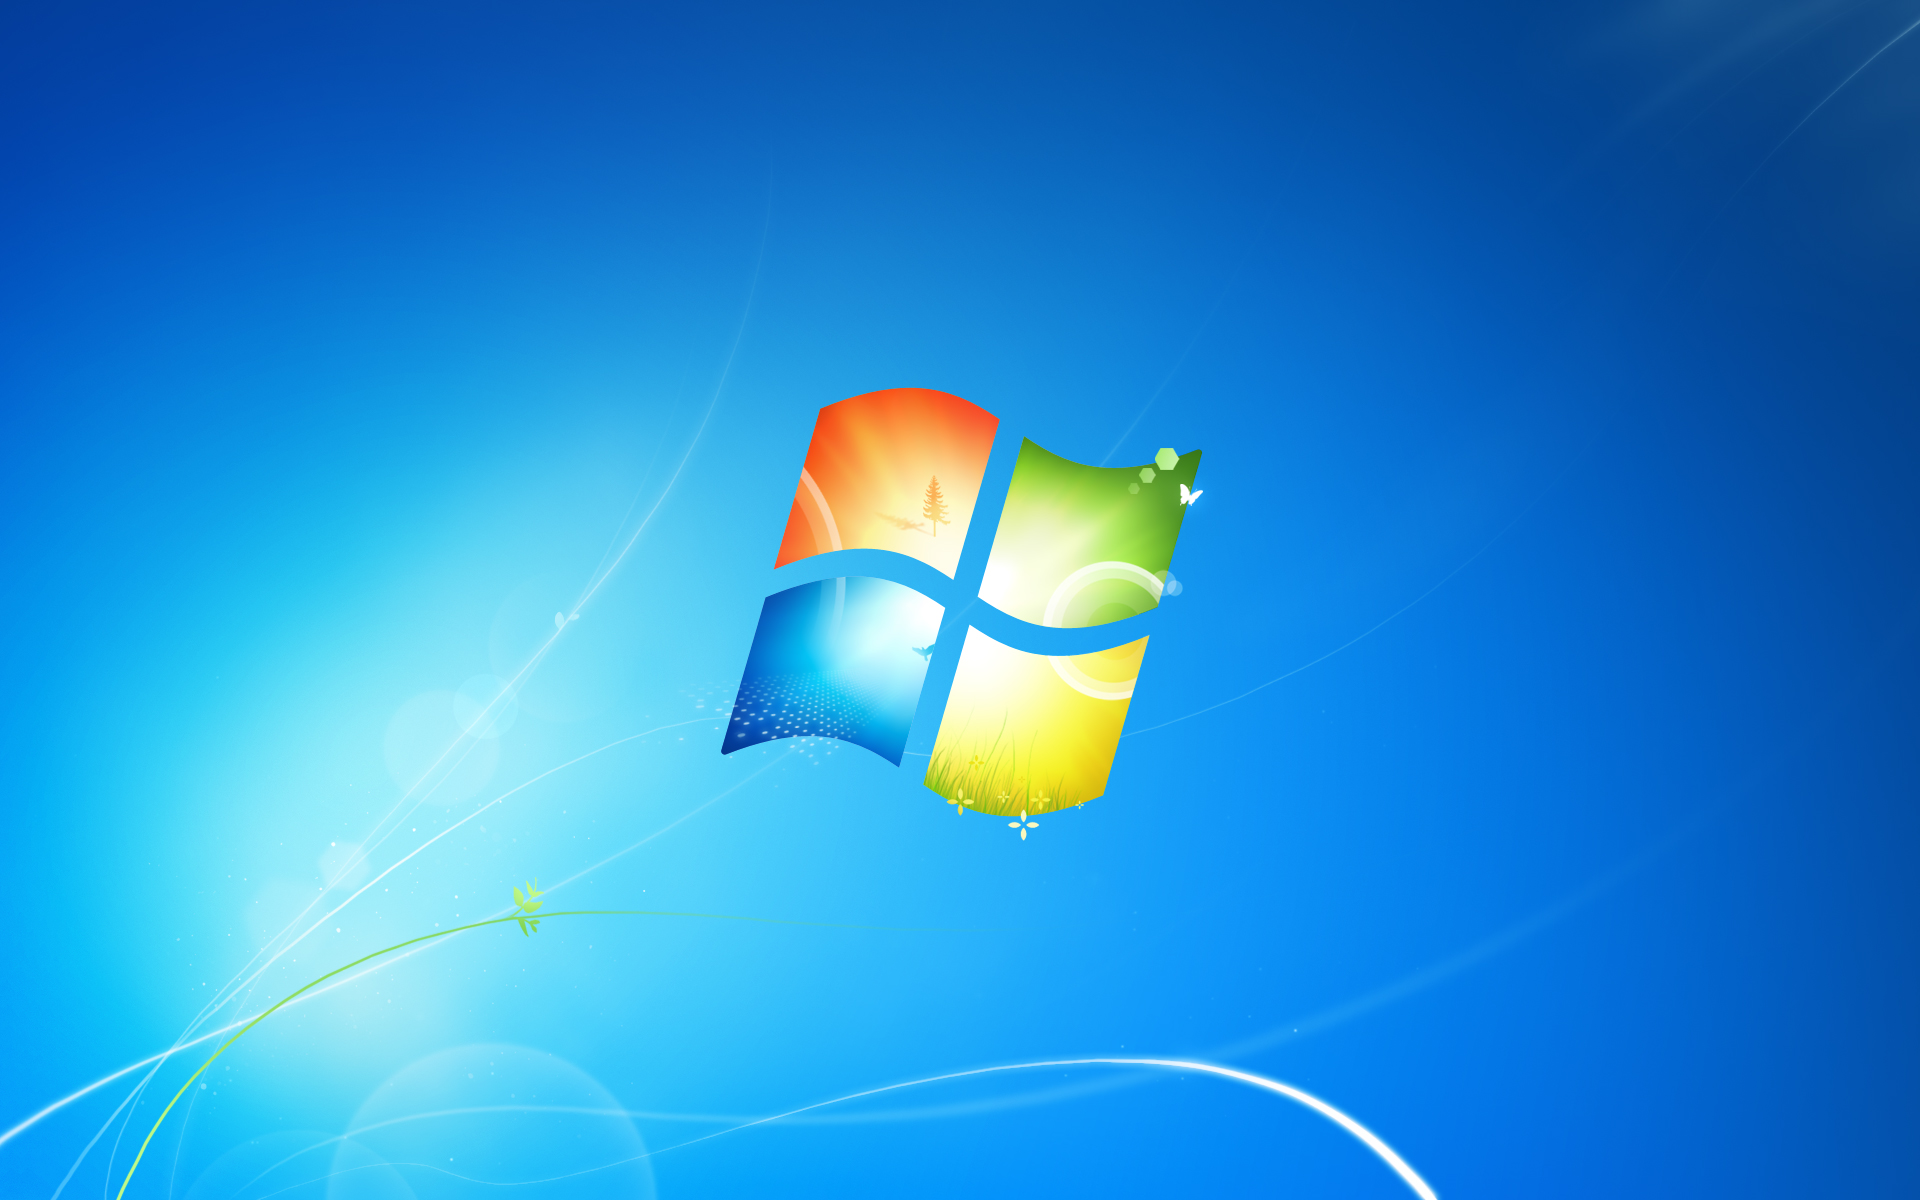 Windows 7 build 7232 leaks with new wallpaper 1920x1200